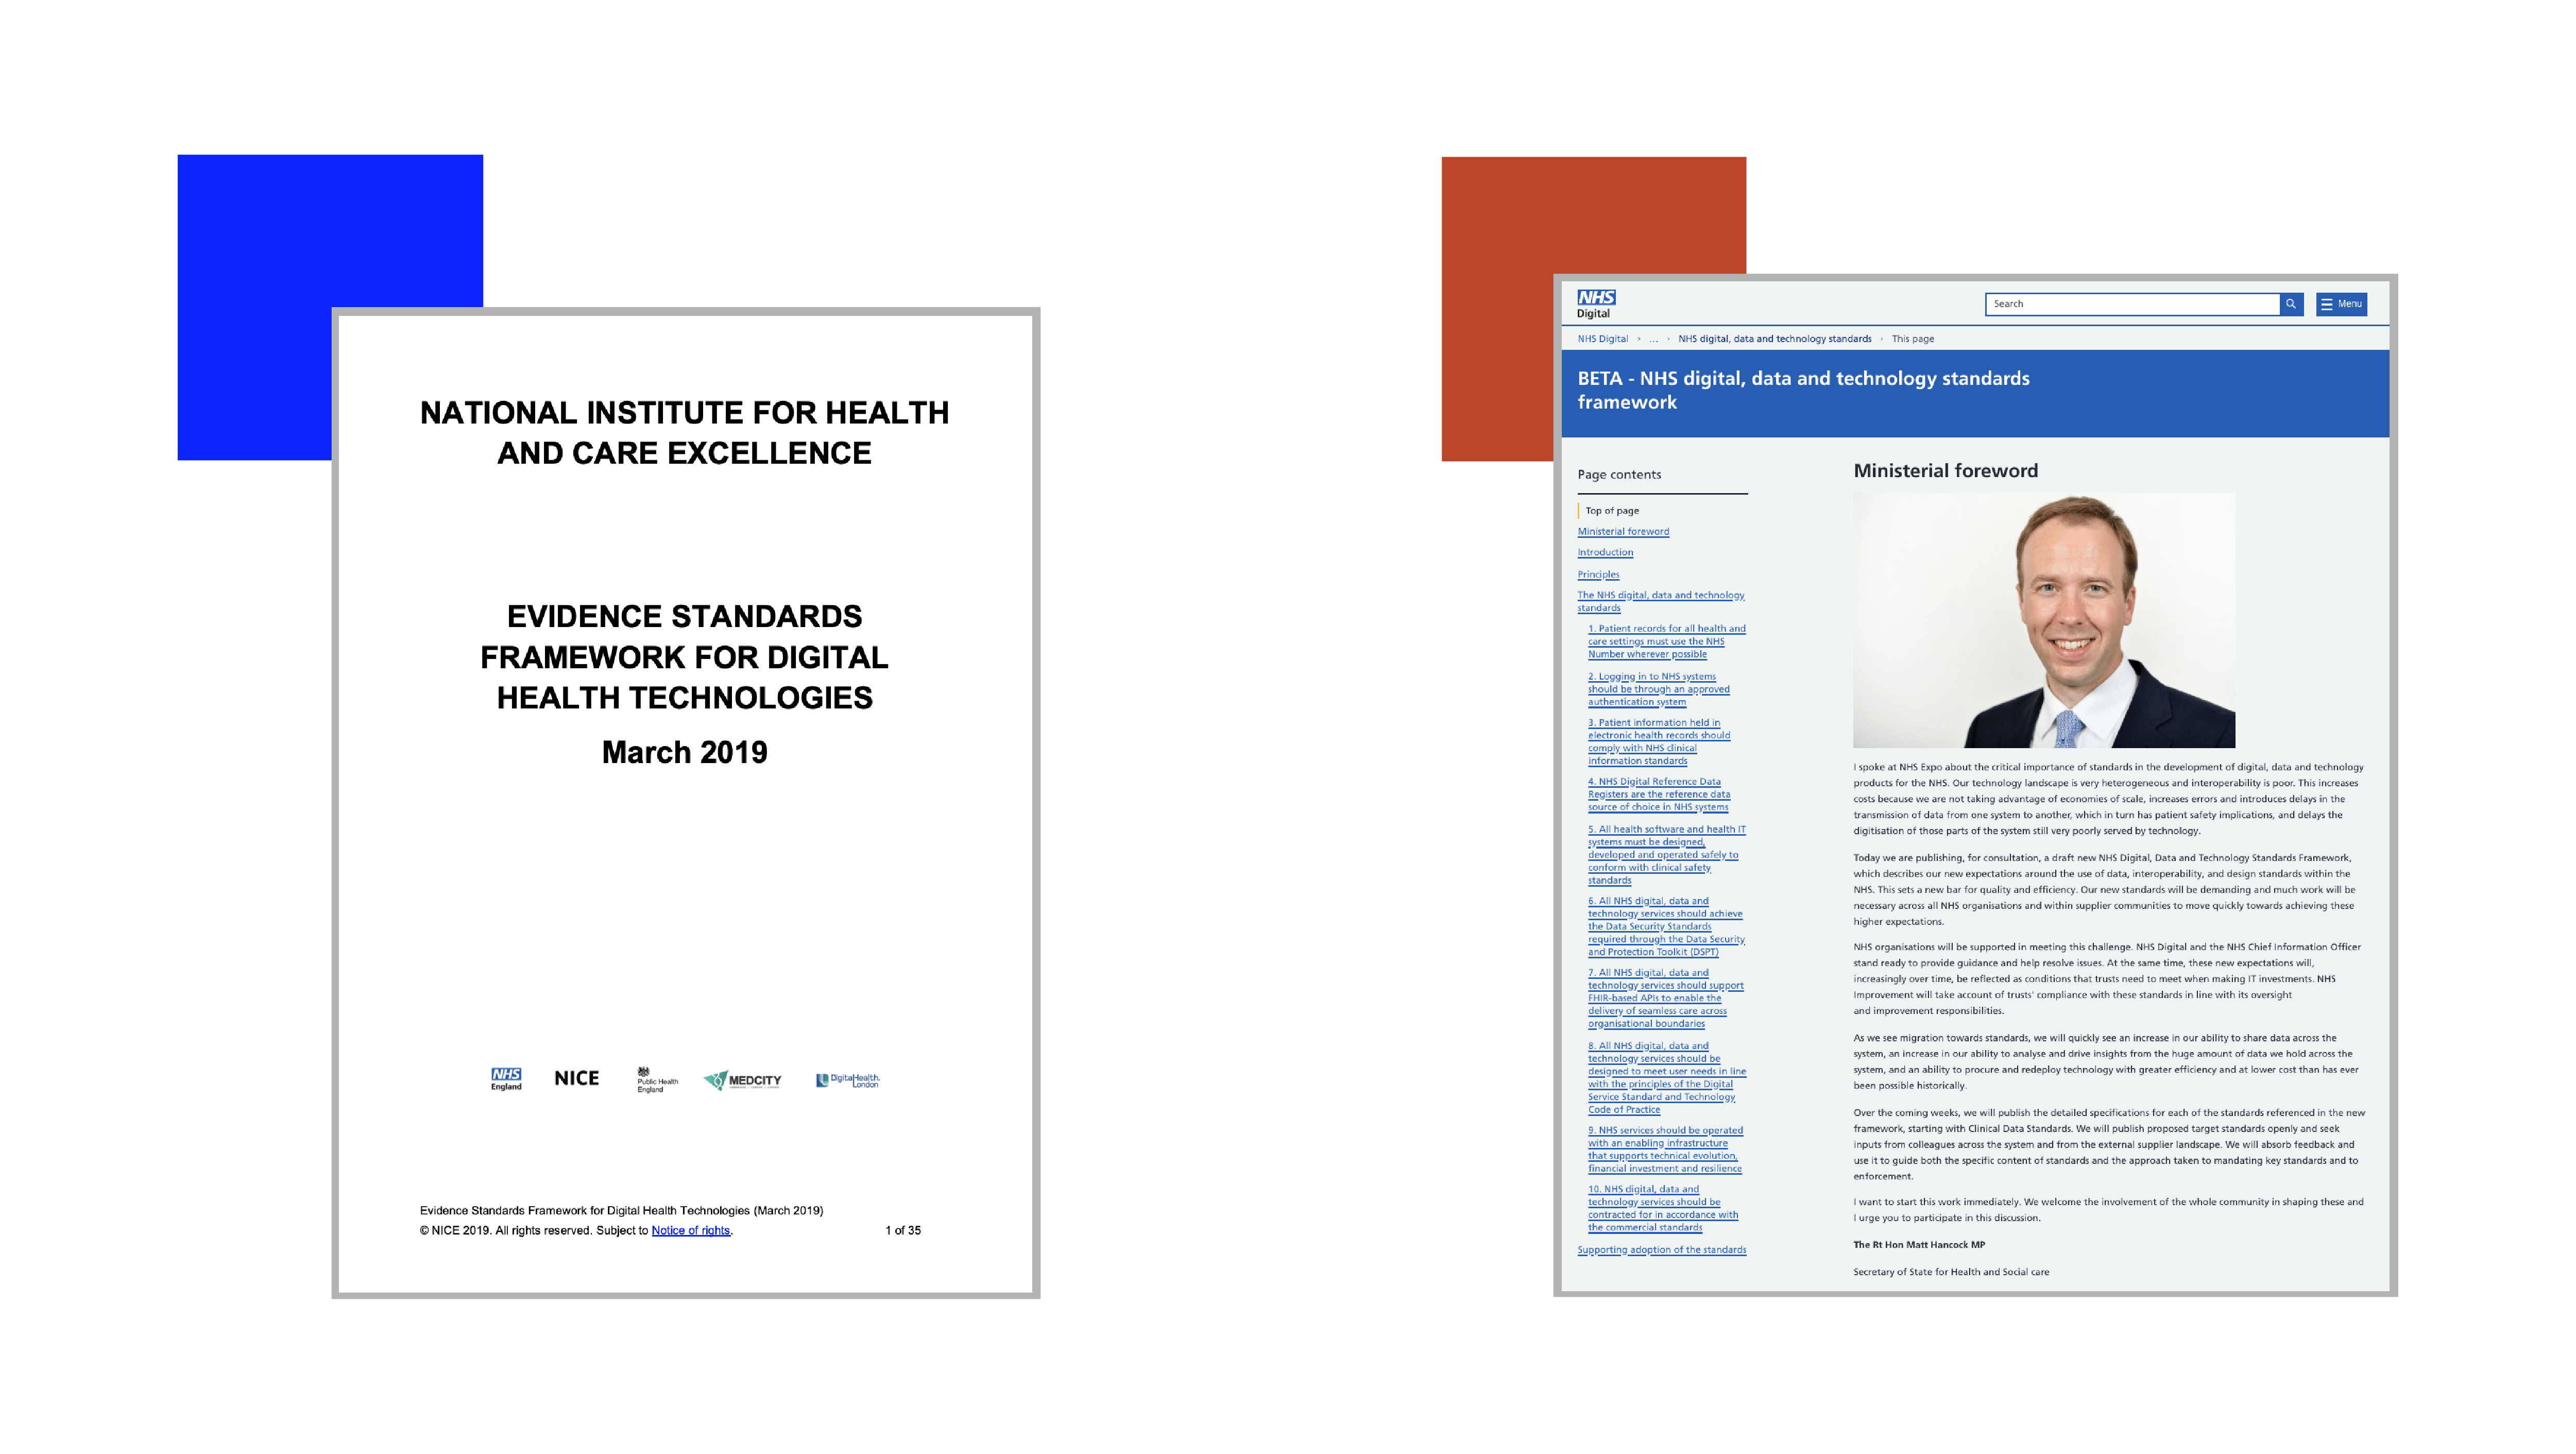 Image shows the front page of the NICE Evidence Standards Framework for Digital Health Technologies, and the home page of the draft NHS digital, data and technologies standards framework